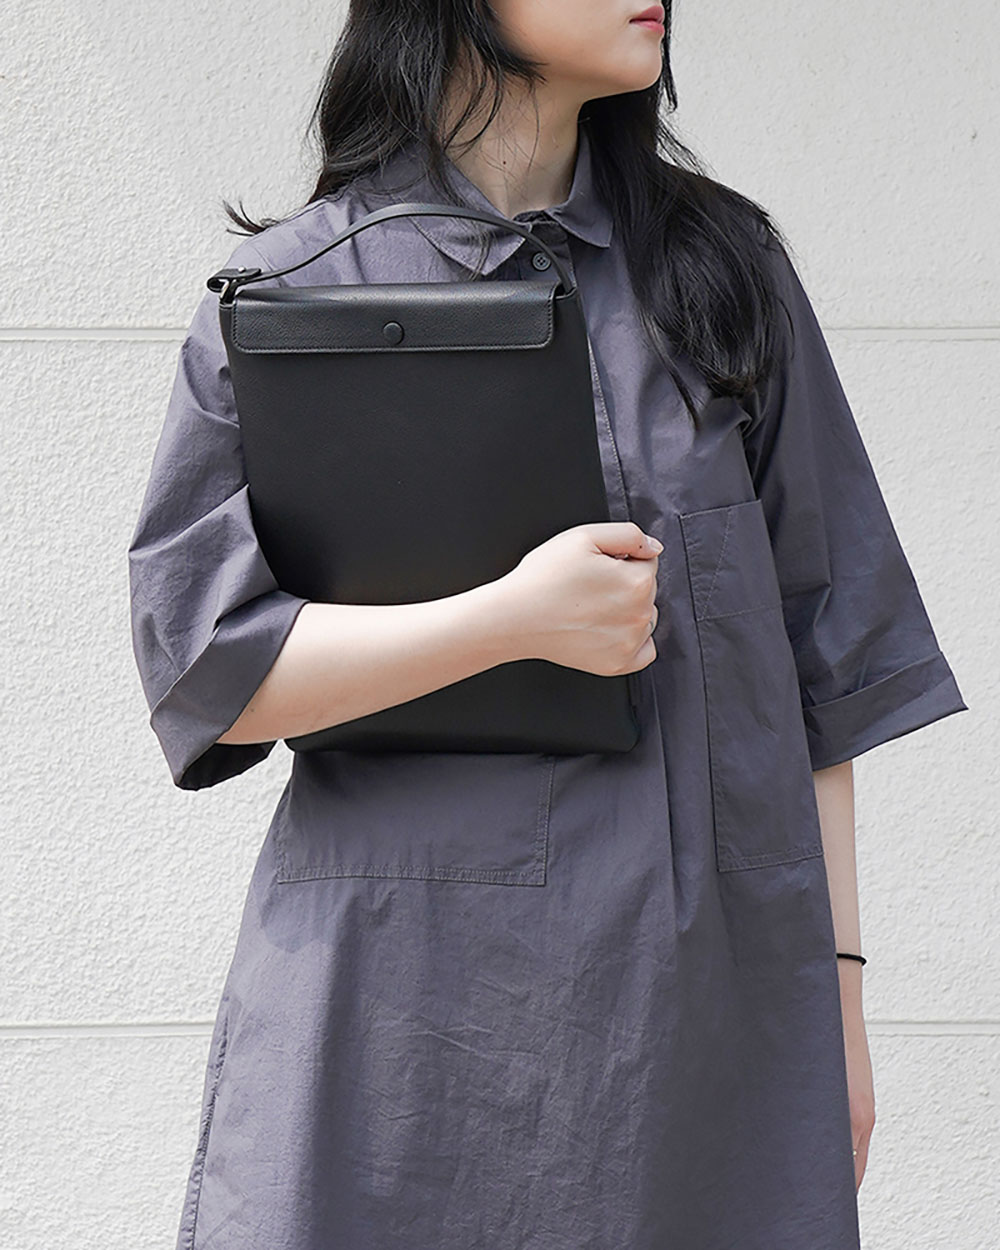 Proper laptop pouch with handle